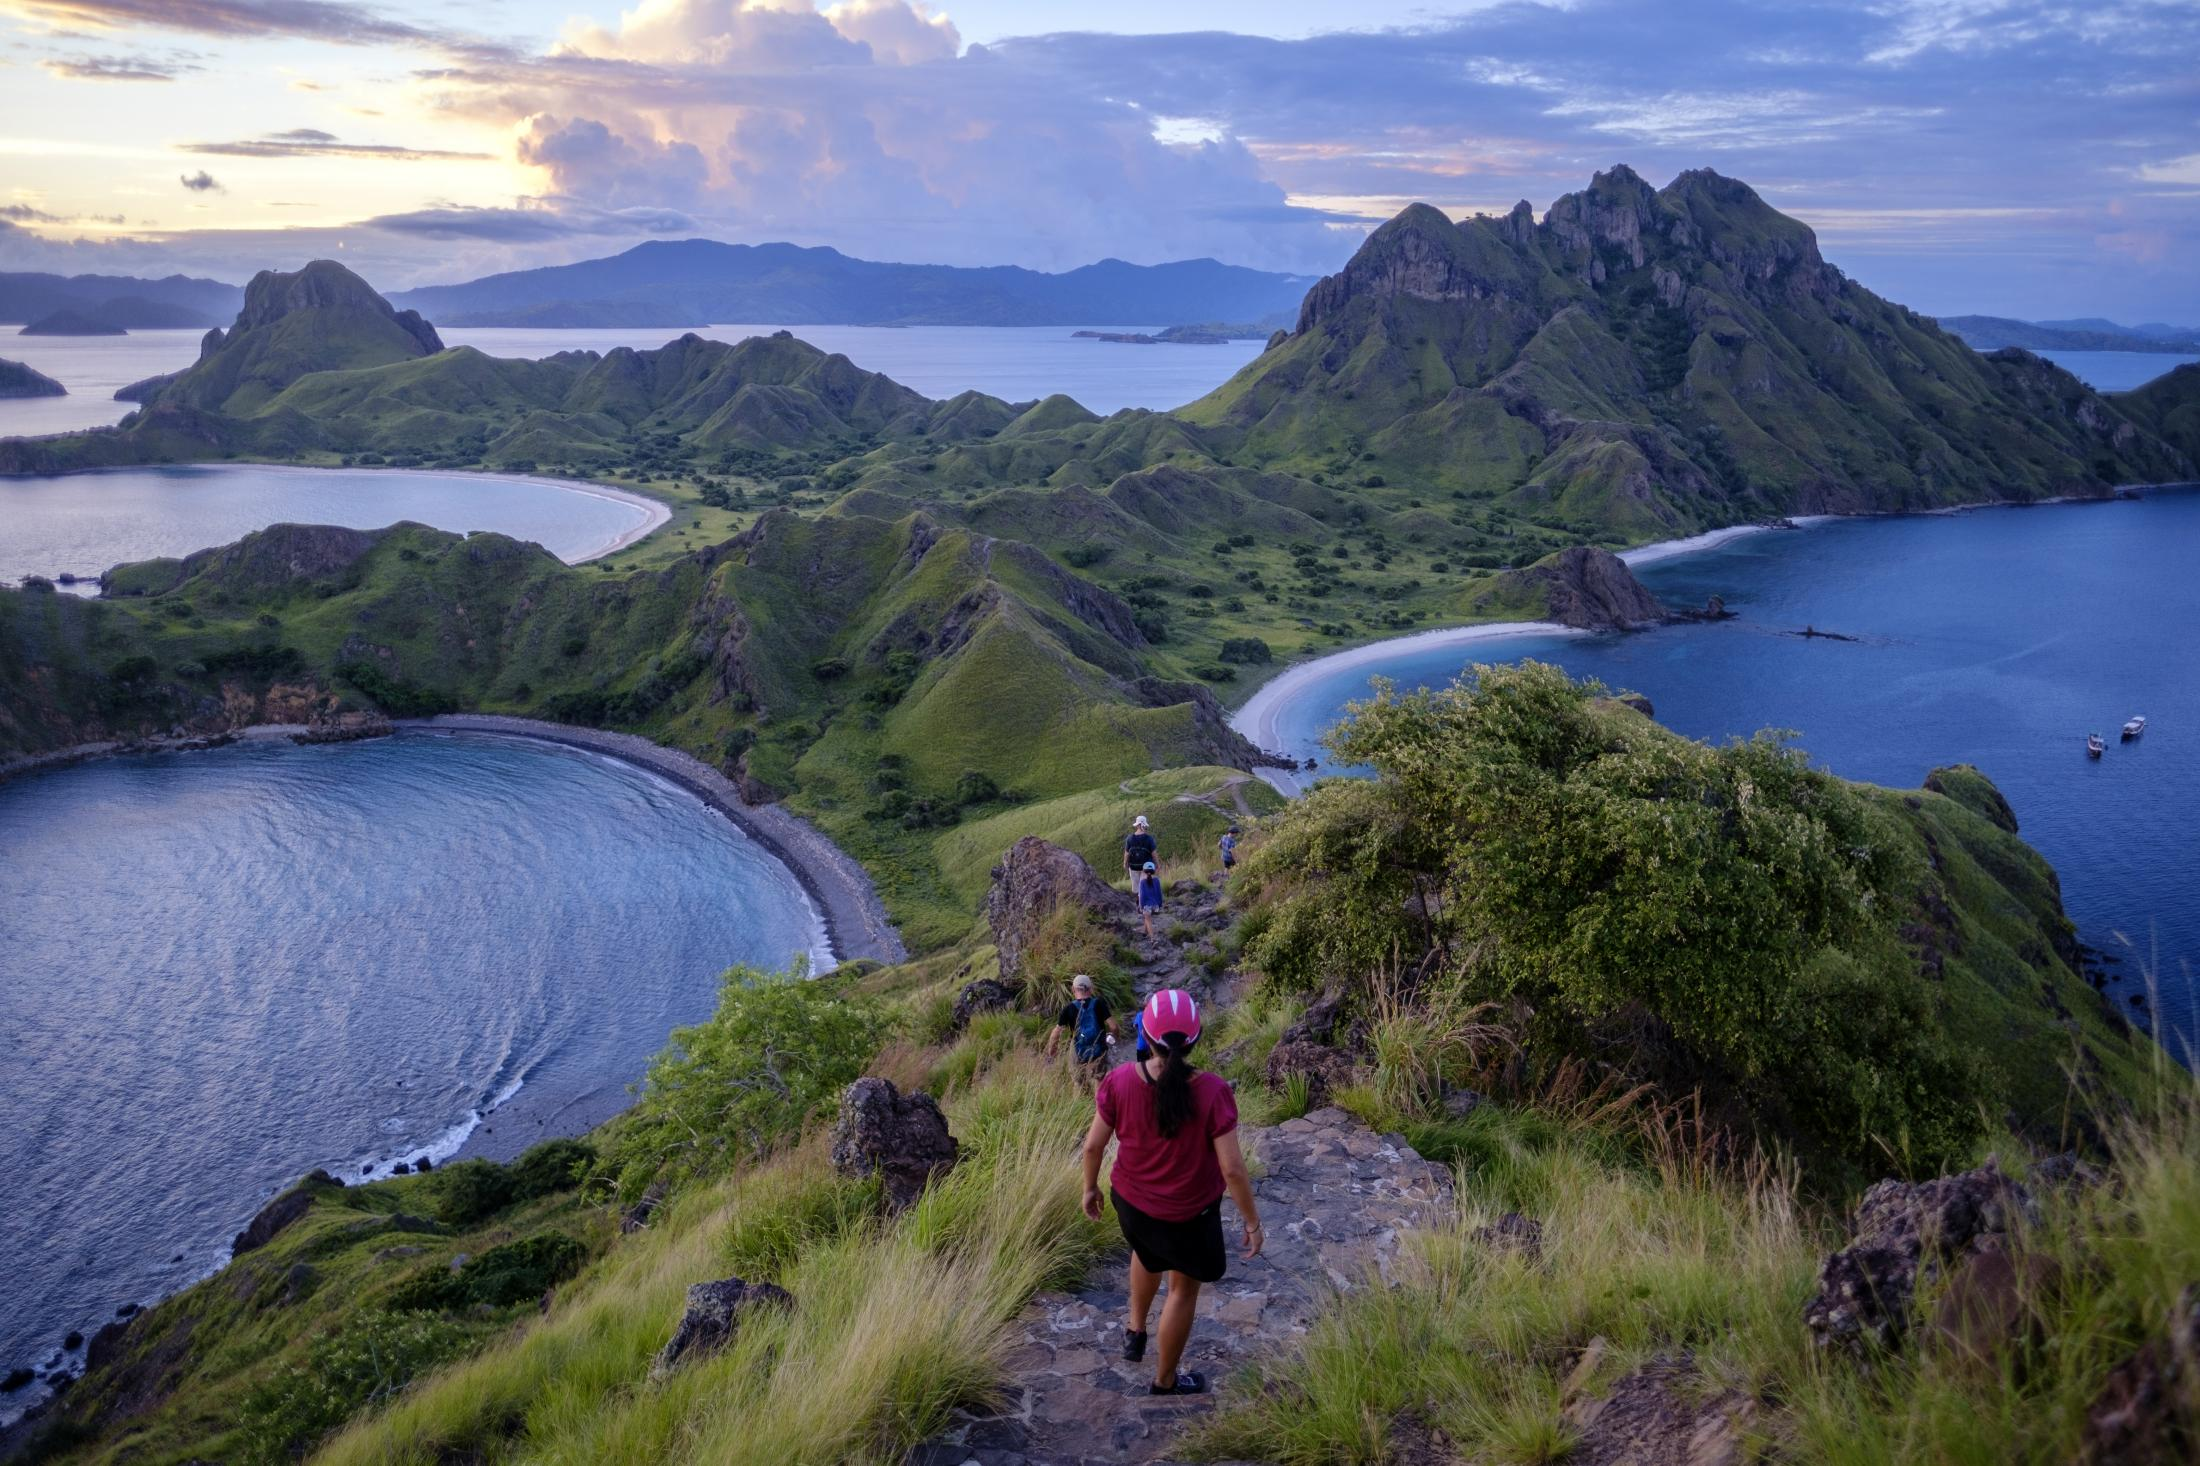 A breathtaking view from Padar Island. It is a small island located between Komodo and Rinca islands within Komodo archipelago, administered under the West Manggarai Regency, East Nusa Tenggara, Indonesia. It is the third largest island part of Komodo National Park.